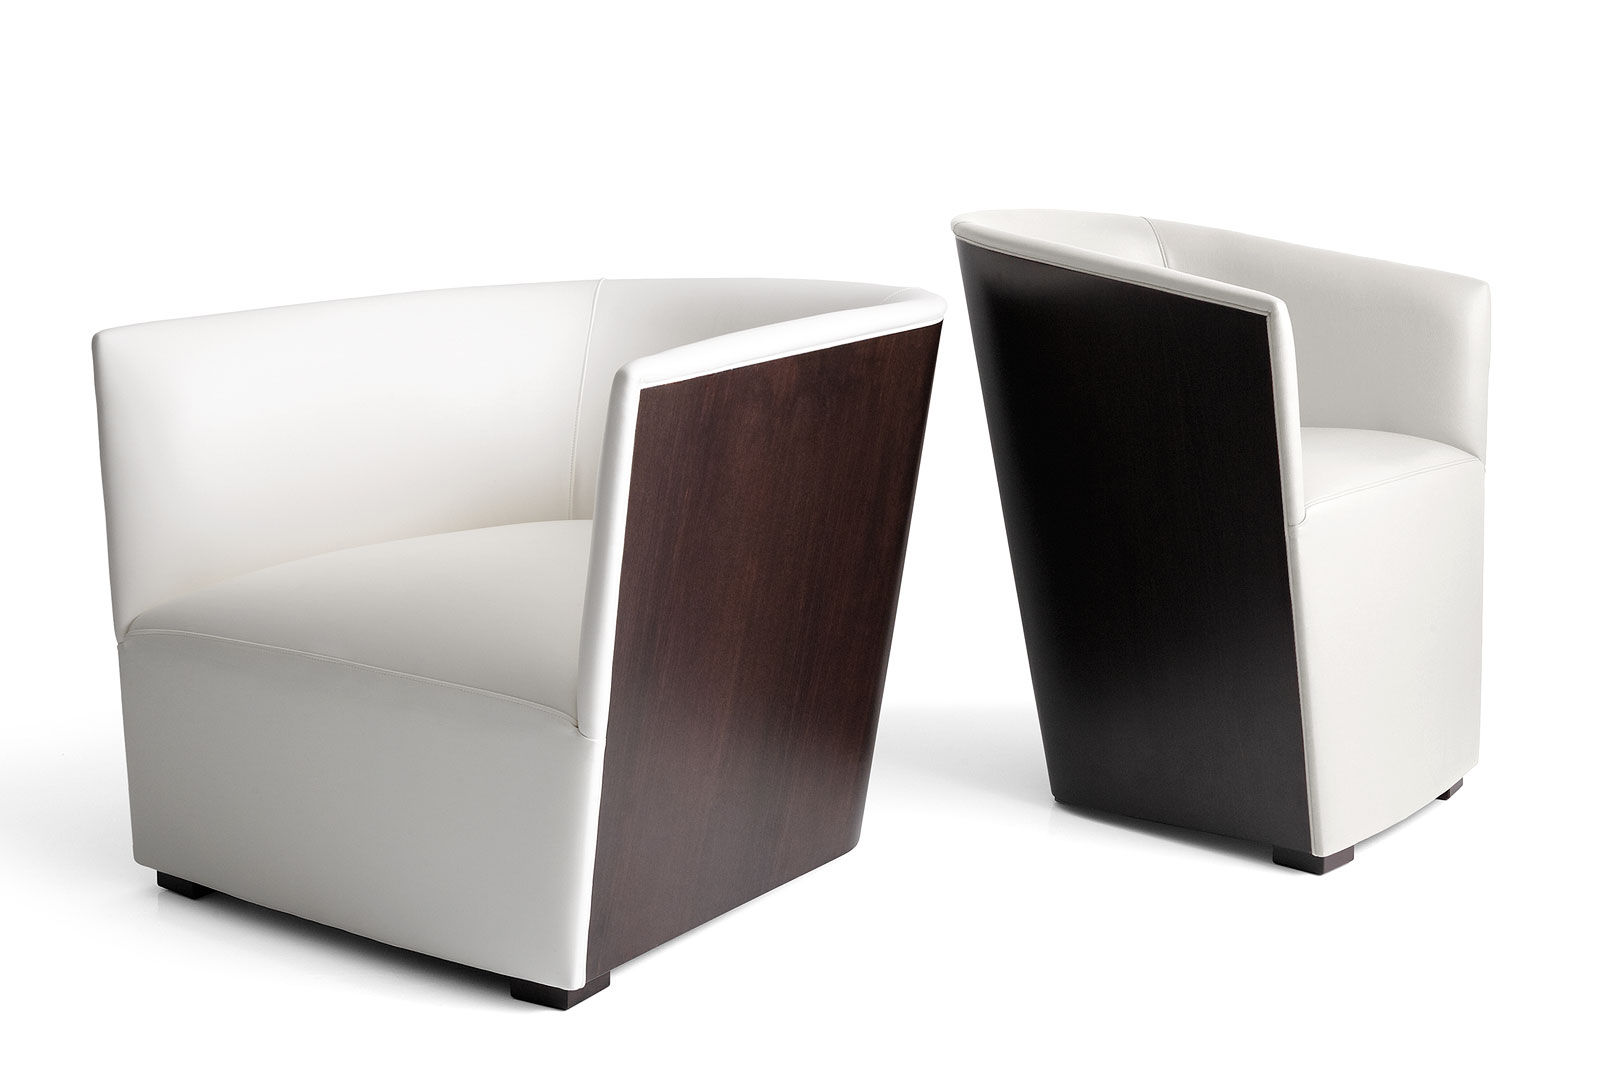 Astonishing Contemporary Armchair Fabric Leather Contract Nest Onthecornerstone Fun Painted Chair Ideas Images Onthecornerstoneorg